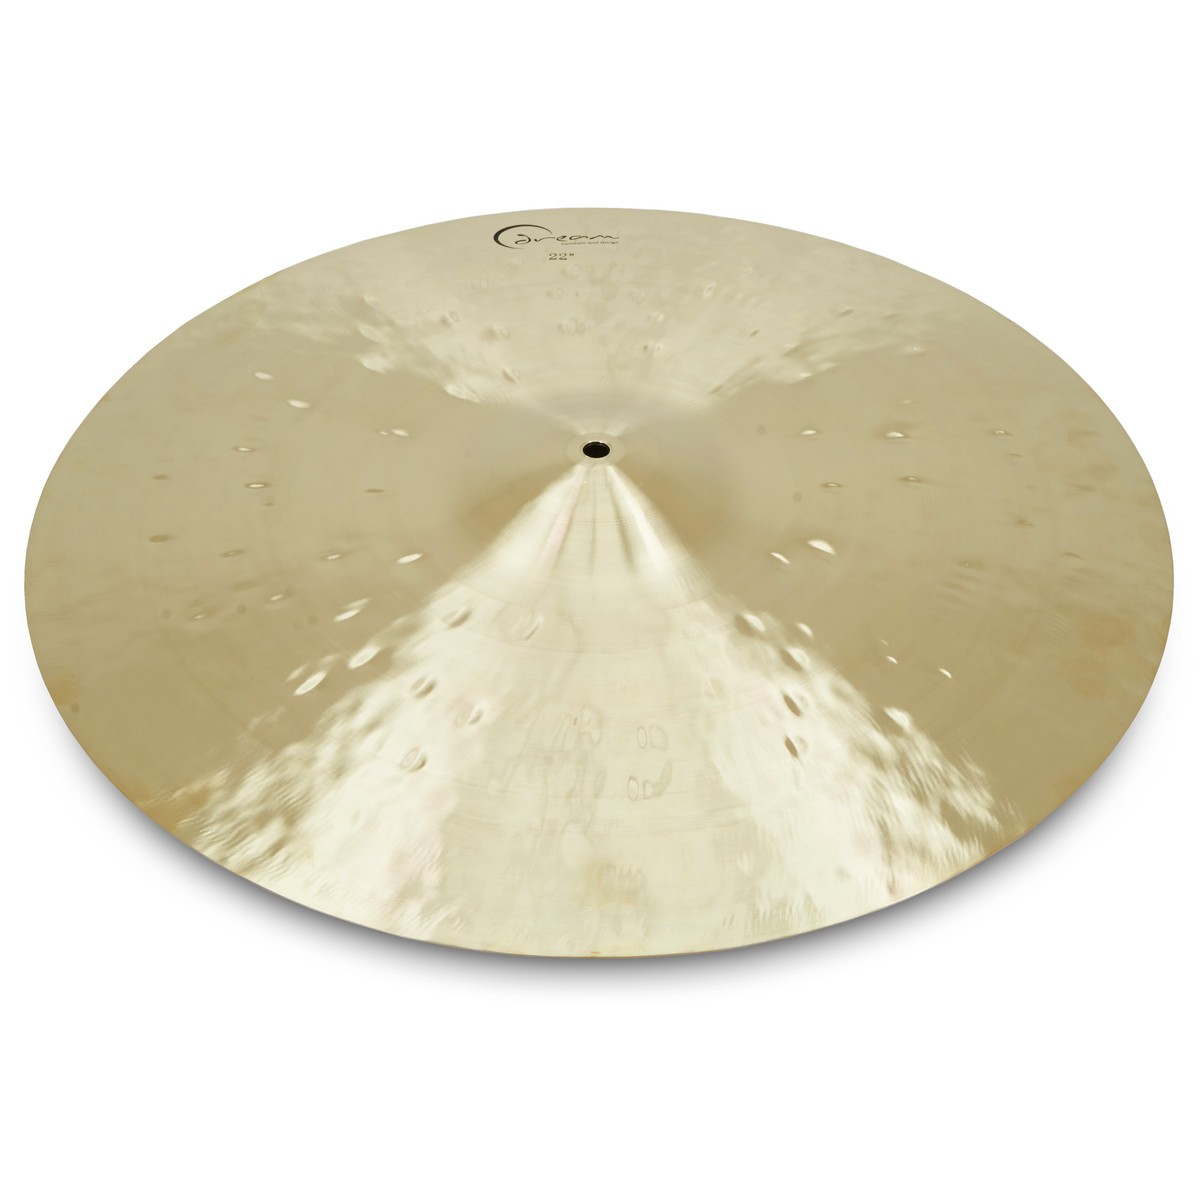 "Dream Cymbals Bliss Series 22"" Gorilla Ride"